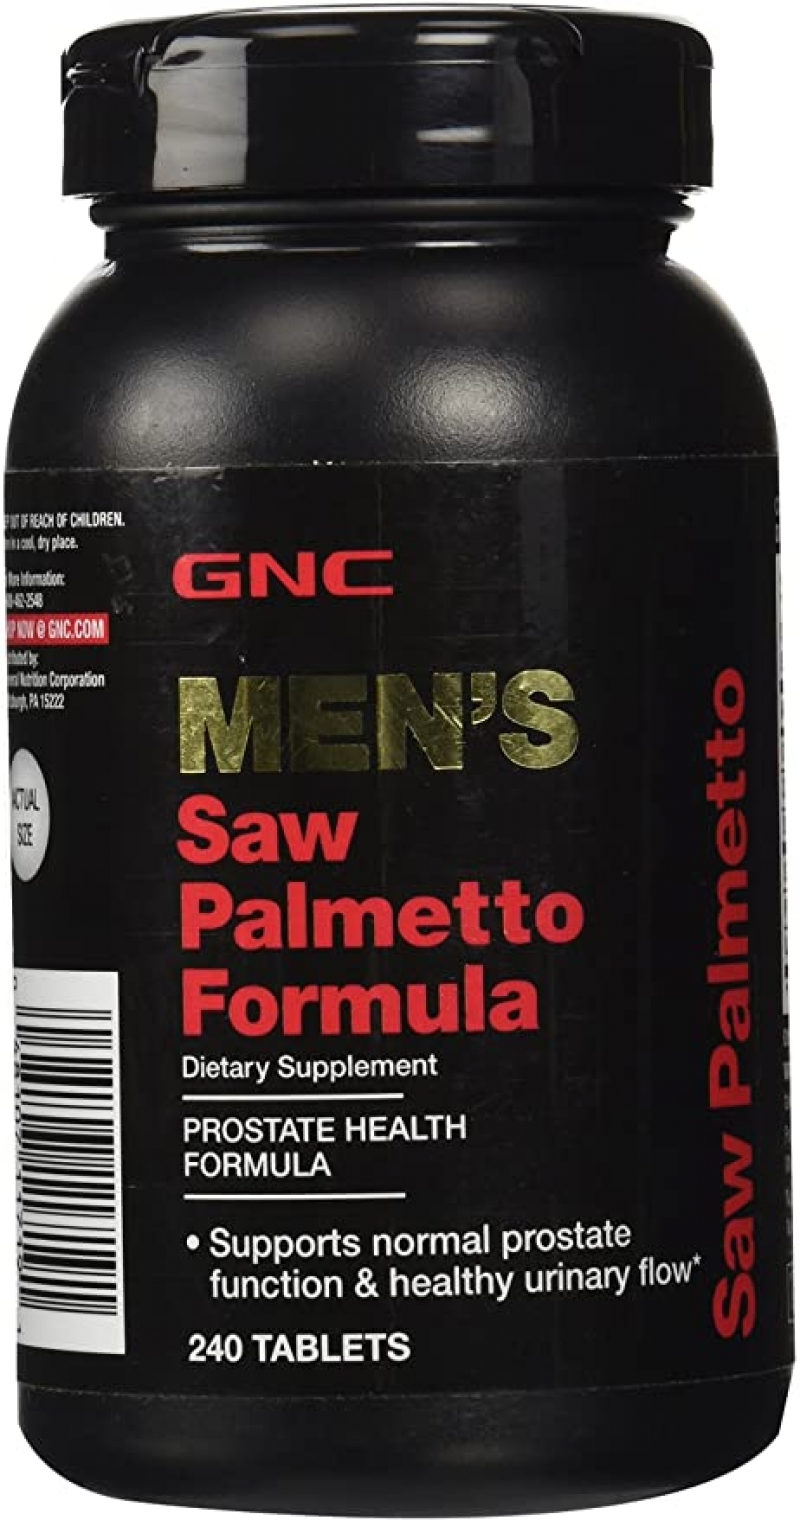 ihocon: GNC Men's Saw Palmetto Formula, 240 Tablets 男士鋸棕櫚 (支持前列腺功能)